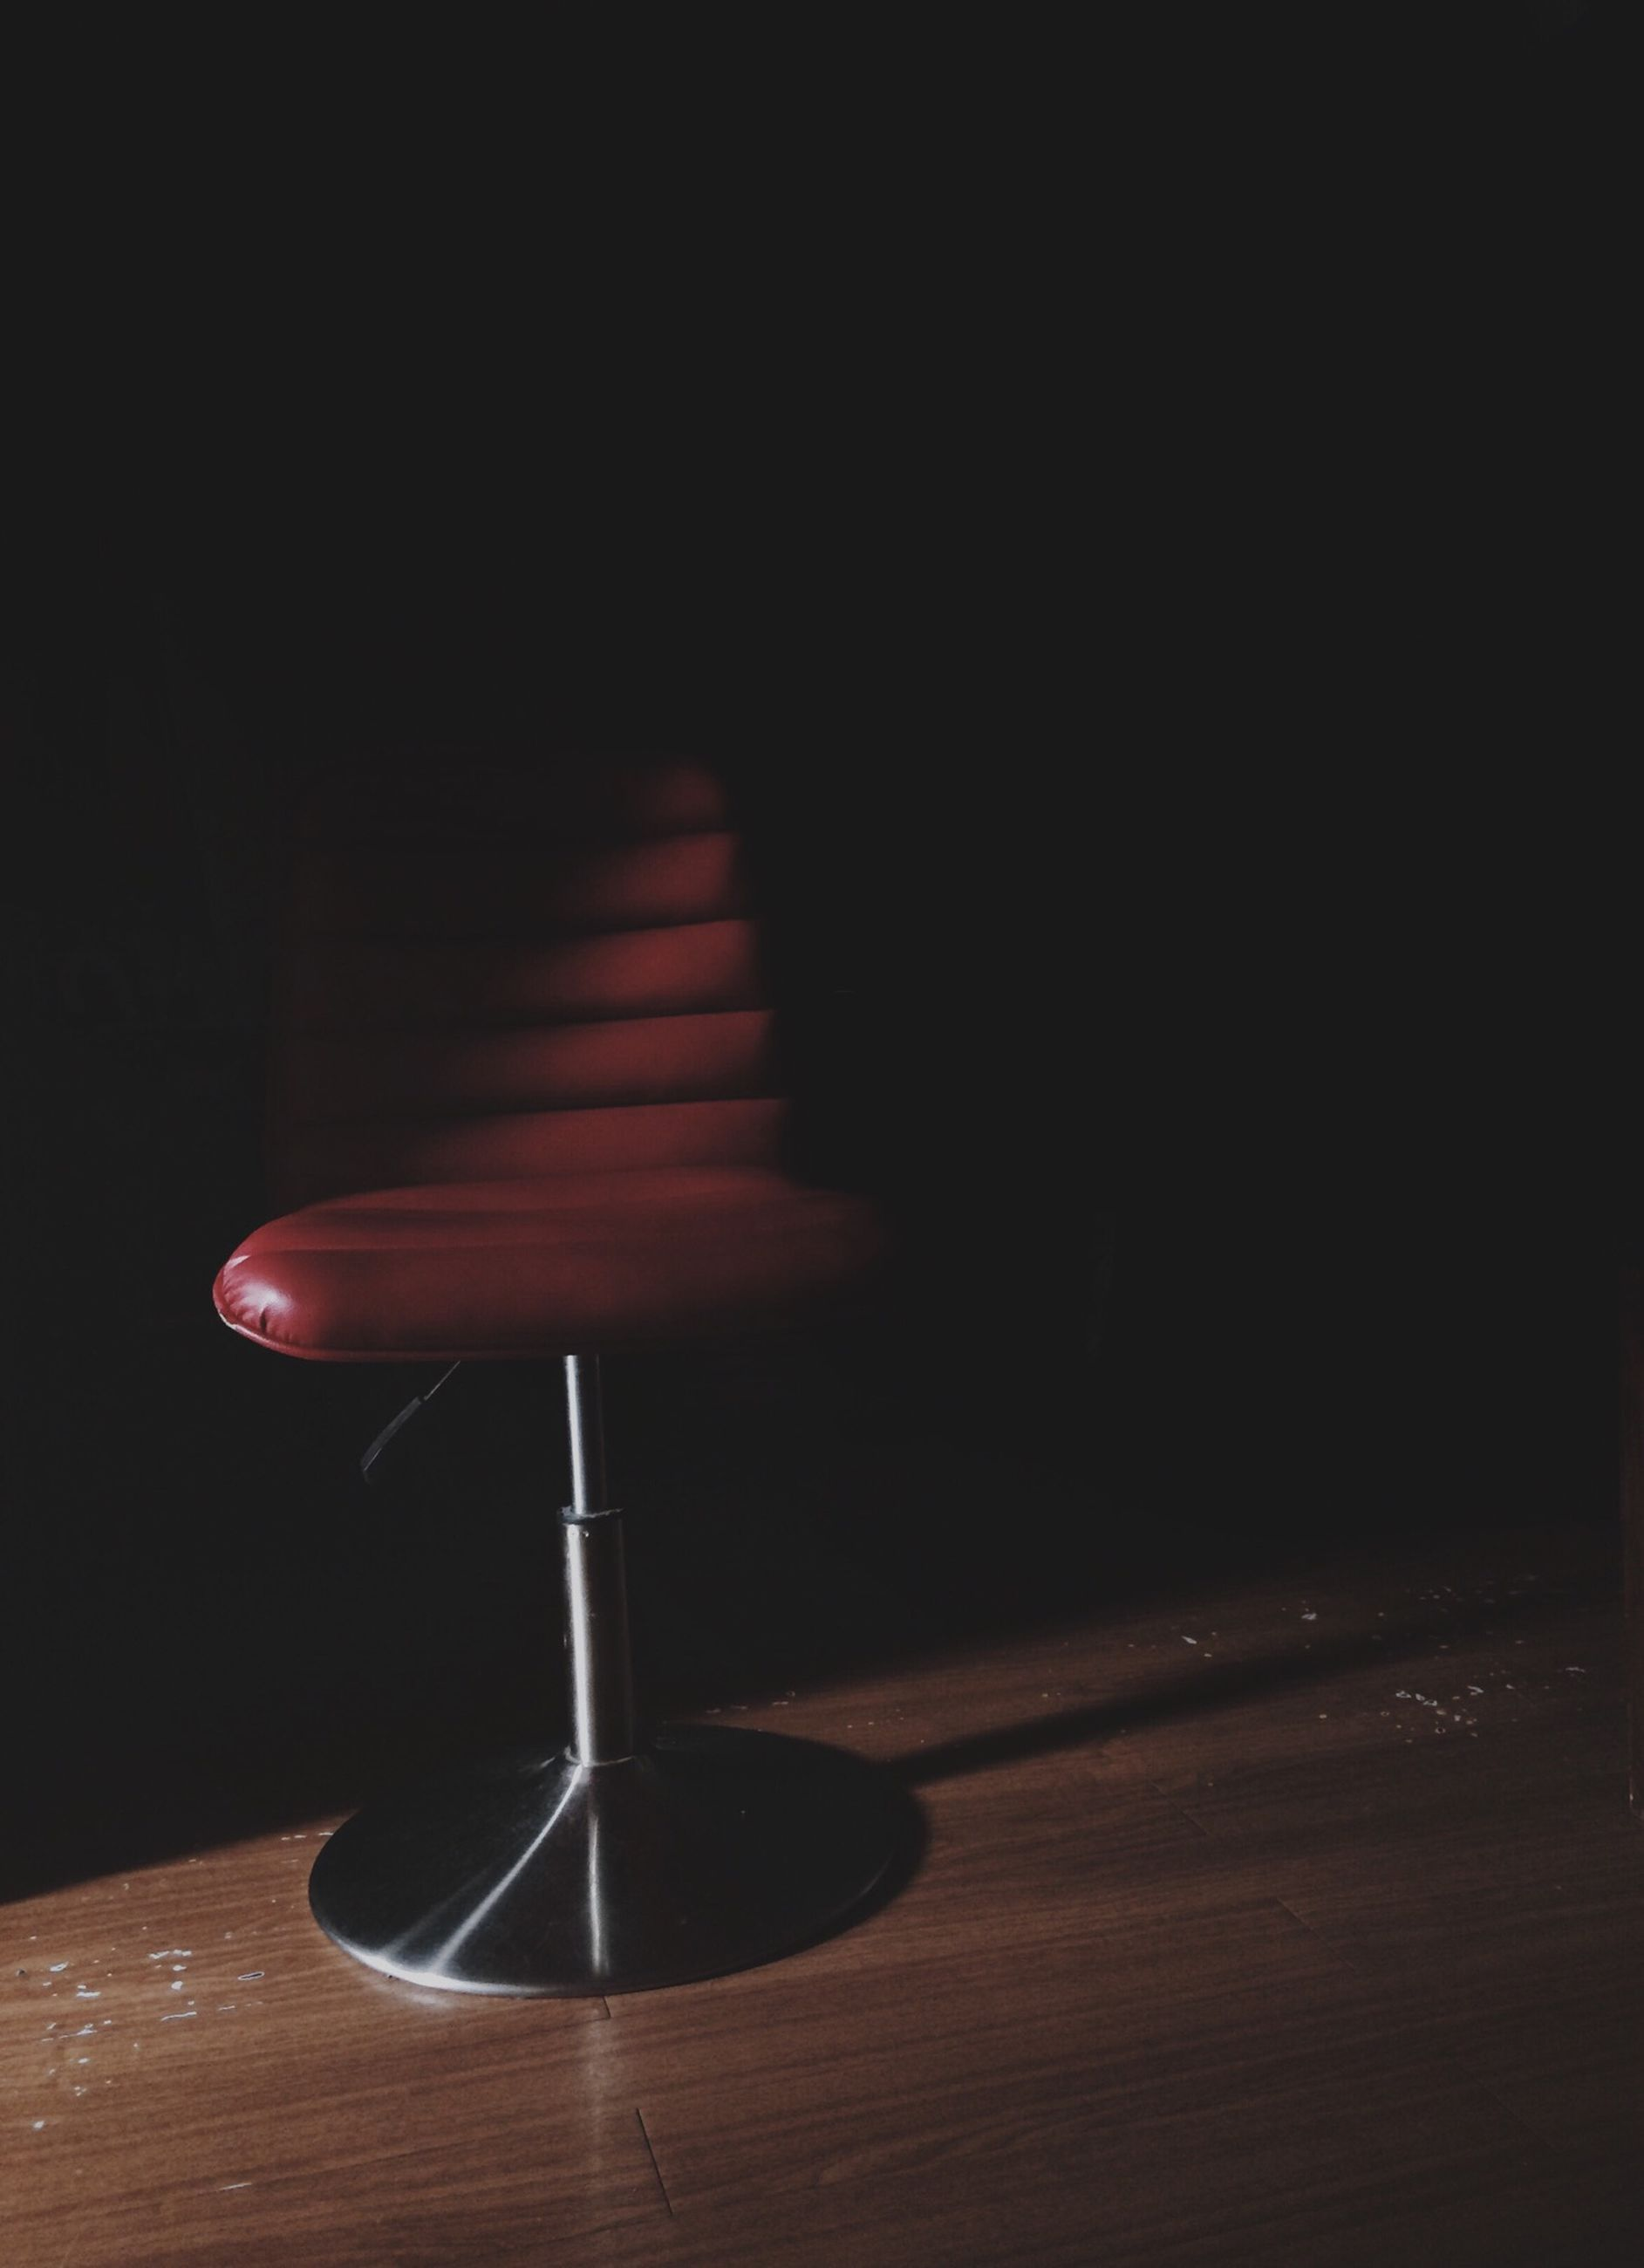 illuminated, indoors, night, lighting equipment, dark, copy space, light - natural phenomenon, electricity, table, lit, glowing, absence, empty, darkroom, electric light, wall - building feature, arts culture and entertainment, no people, still life, single object